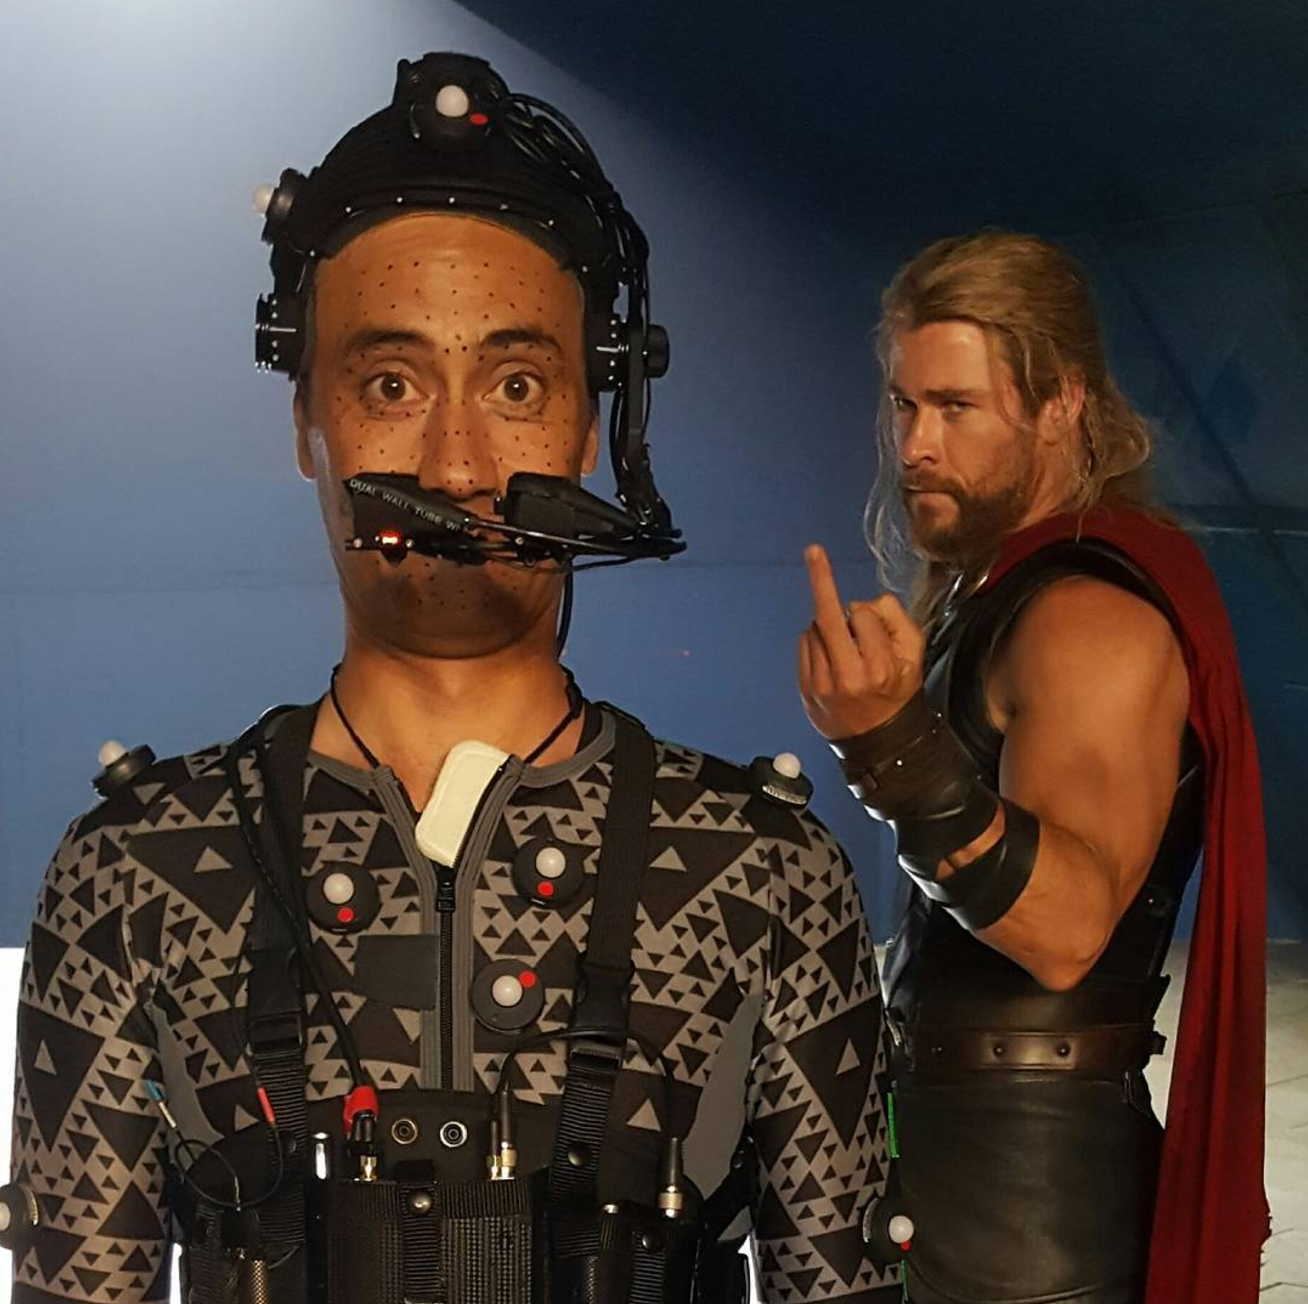 thor-flips-off-director-taika-waititi-in-funny-thor-ragnarok-set-photo11